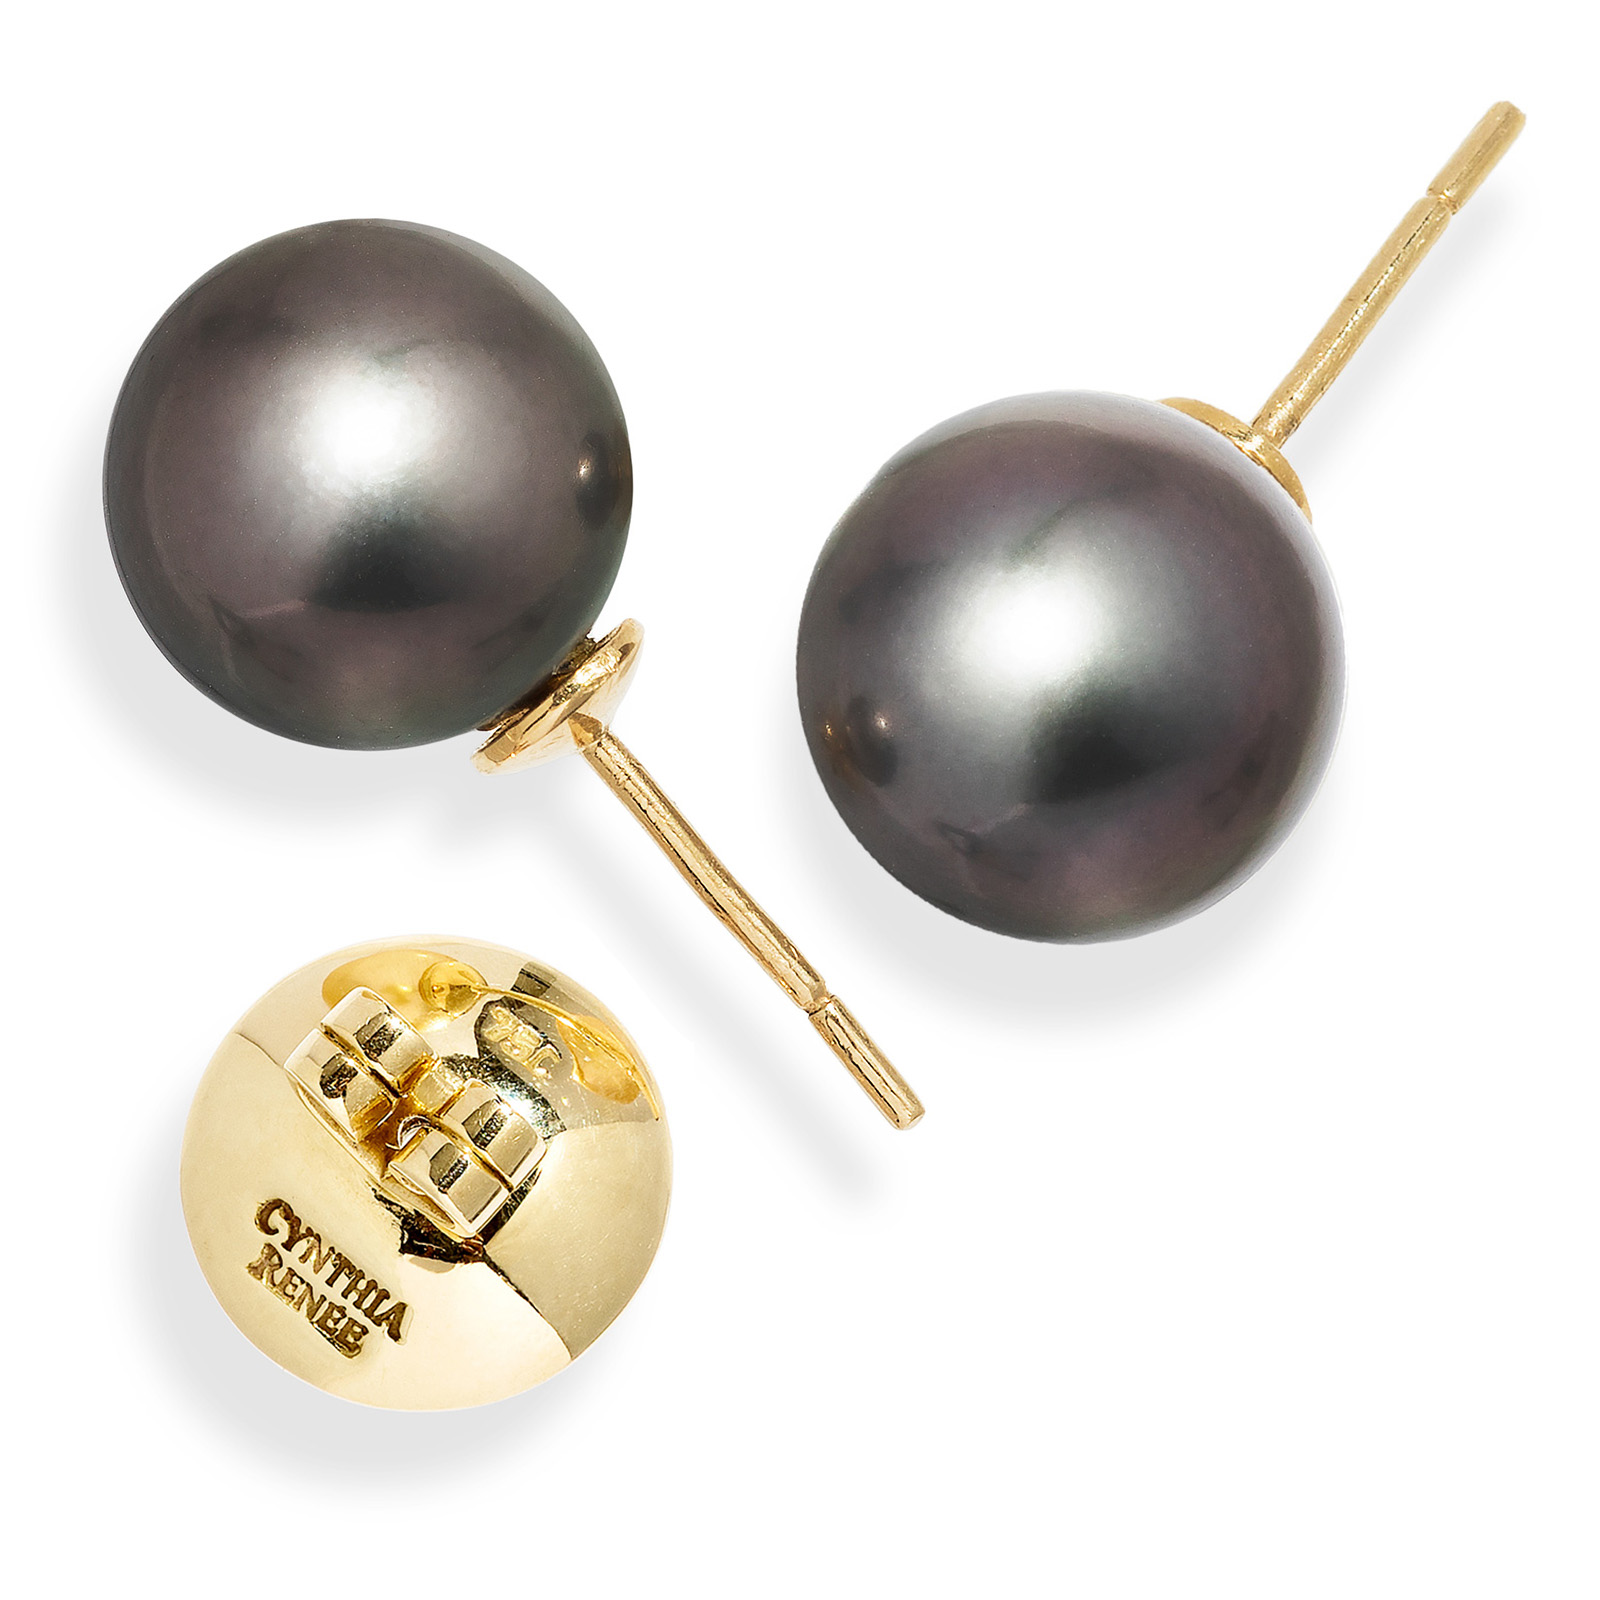 """Pair of Black Tahitian Pearls (11.9 mm) on 18-karat yellow golds removable """"Progressive Pearl"""" posts with 12 mm parabolic friction backs; natural color."""